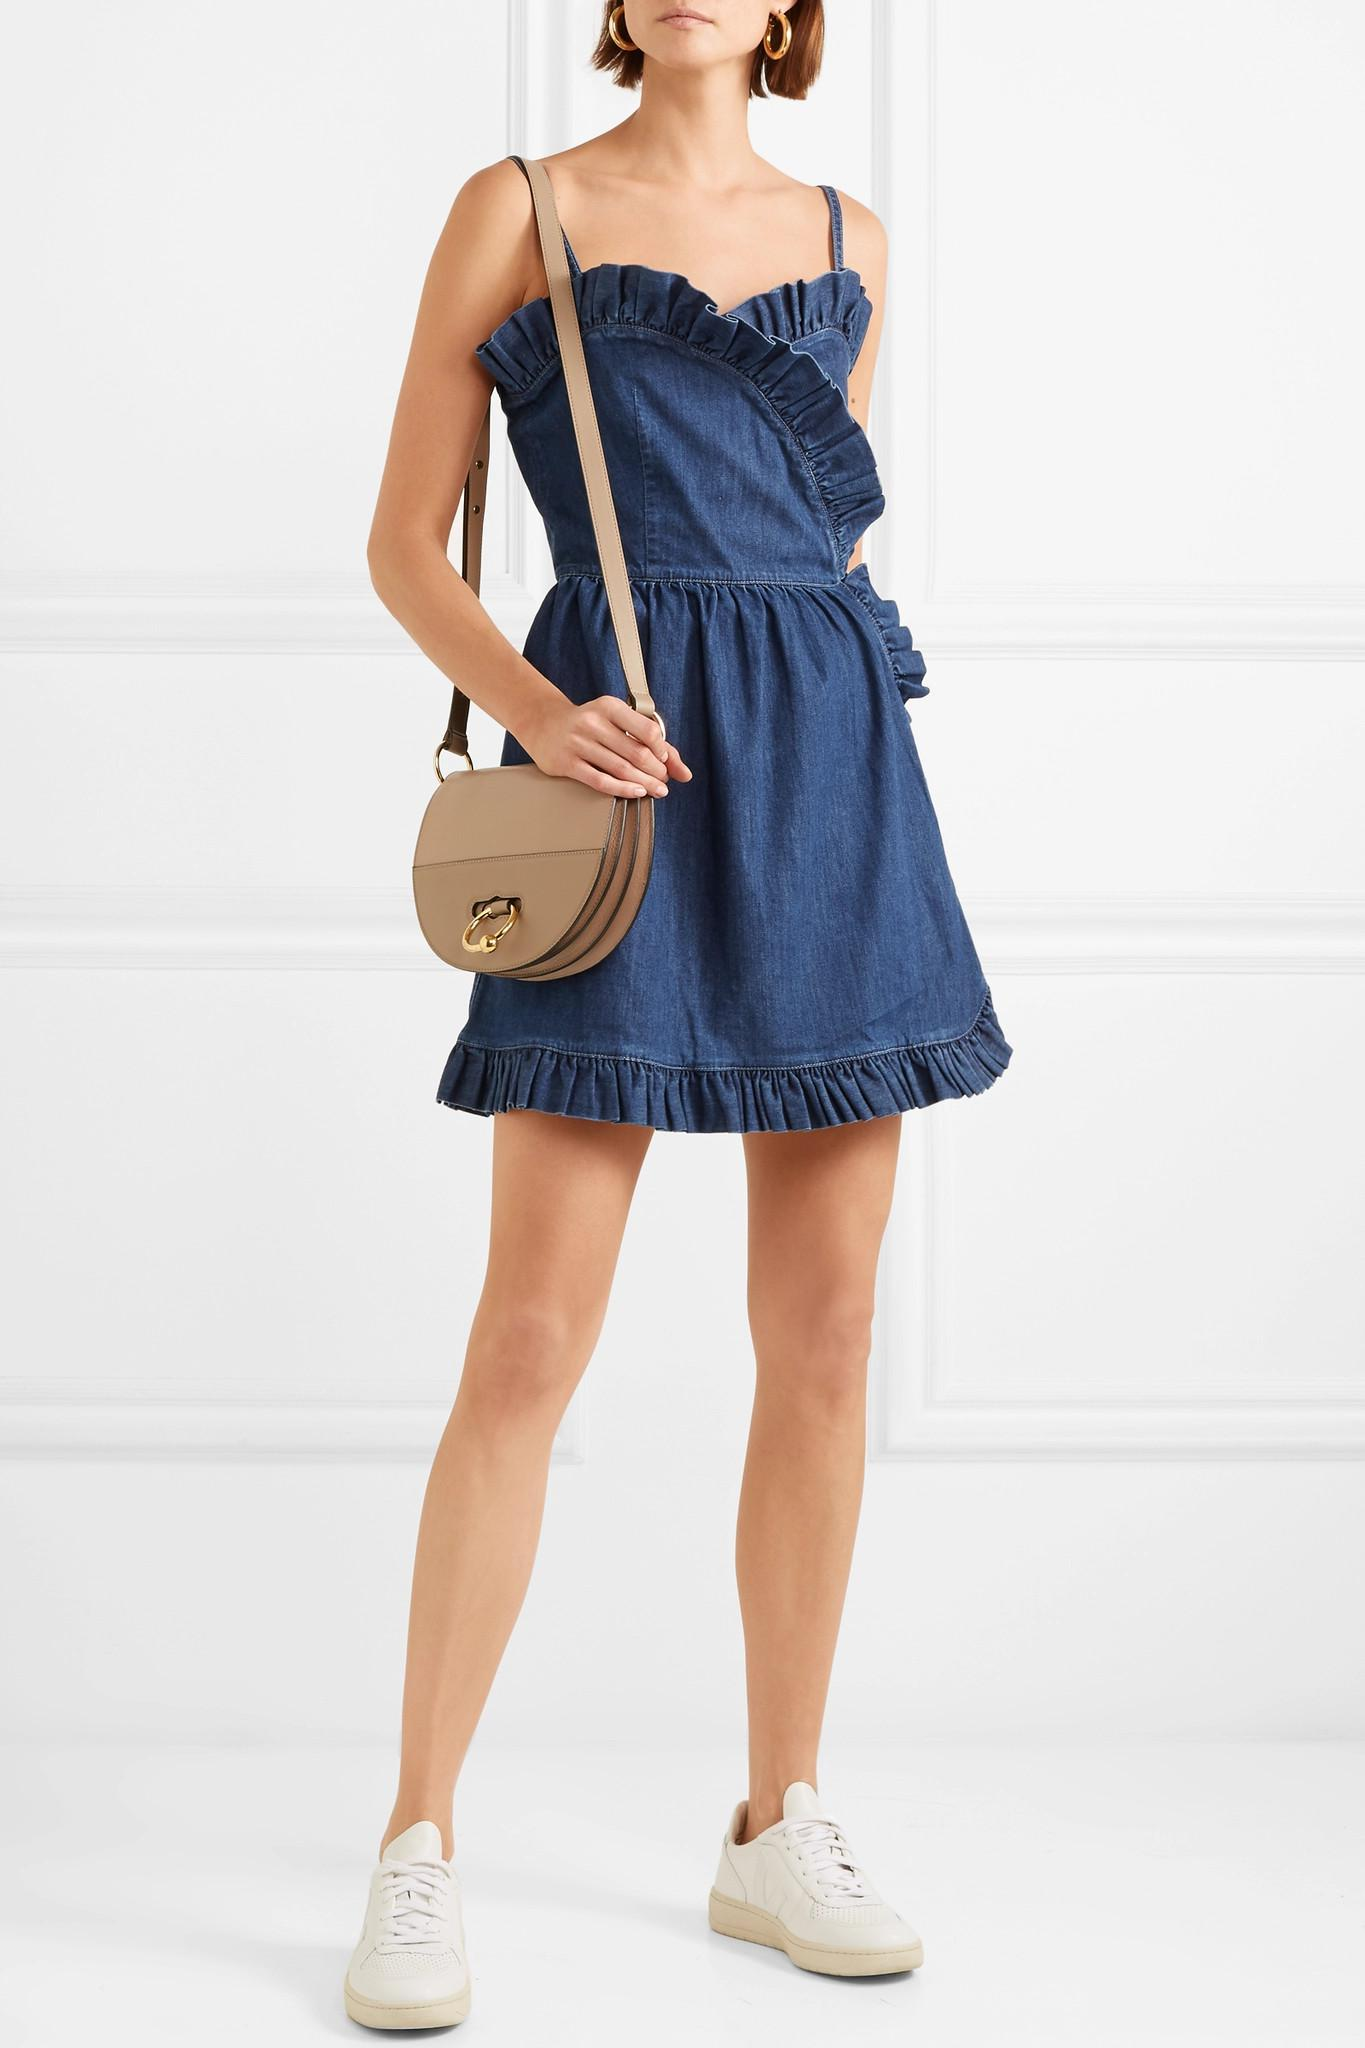 5069a65070 Stella McCartney - Blue Ruffled Denim Wrap Mini Dress - Lyst. View  fullscreen